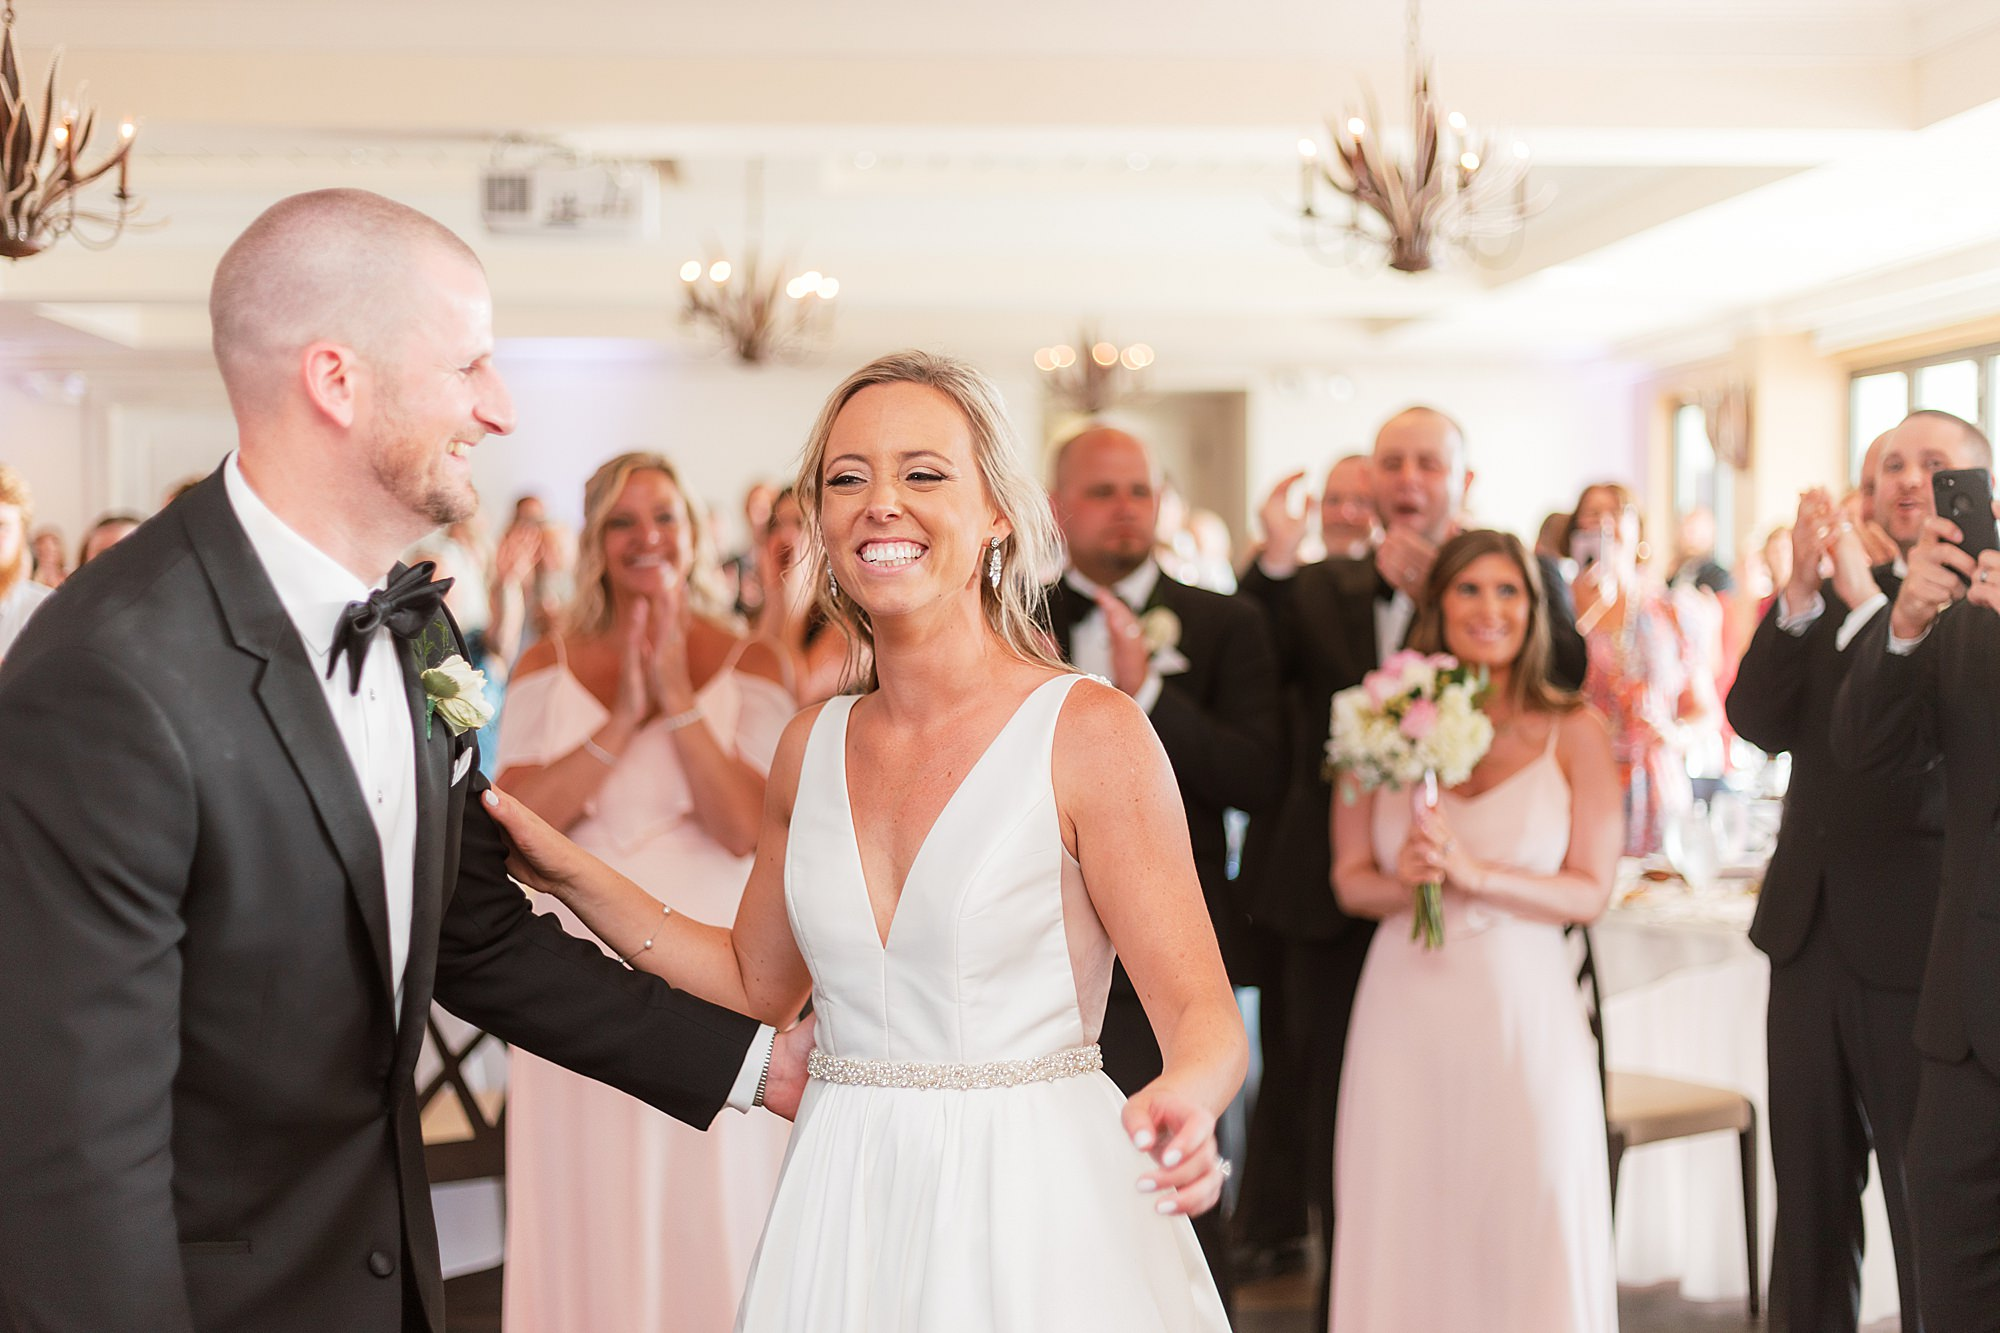 Natural and Vibrant Wedding Photography at the Reeds in Stone Harbor NJ by Magdalena Studios 0057